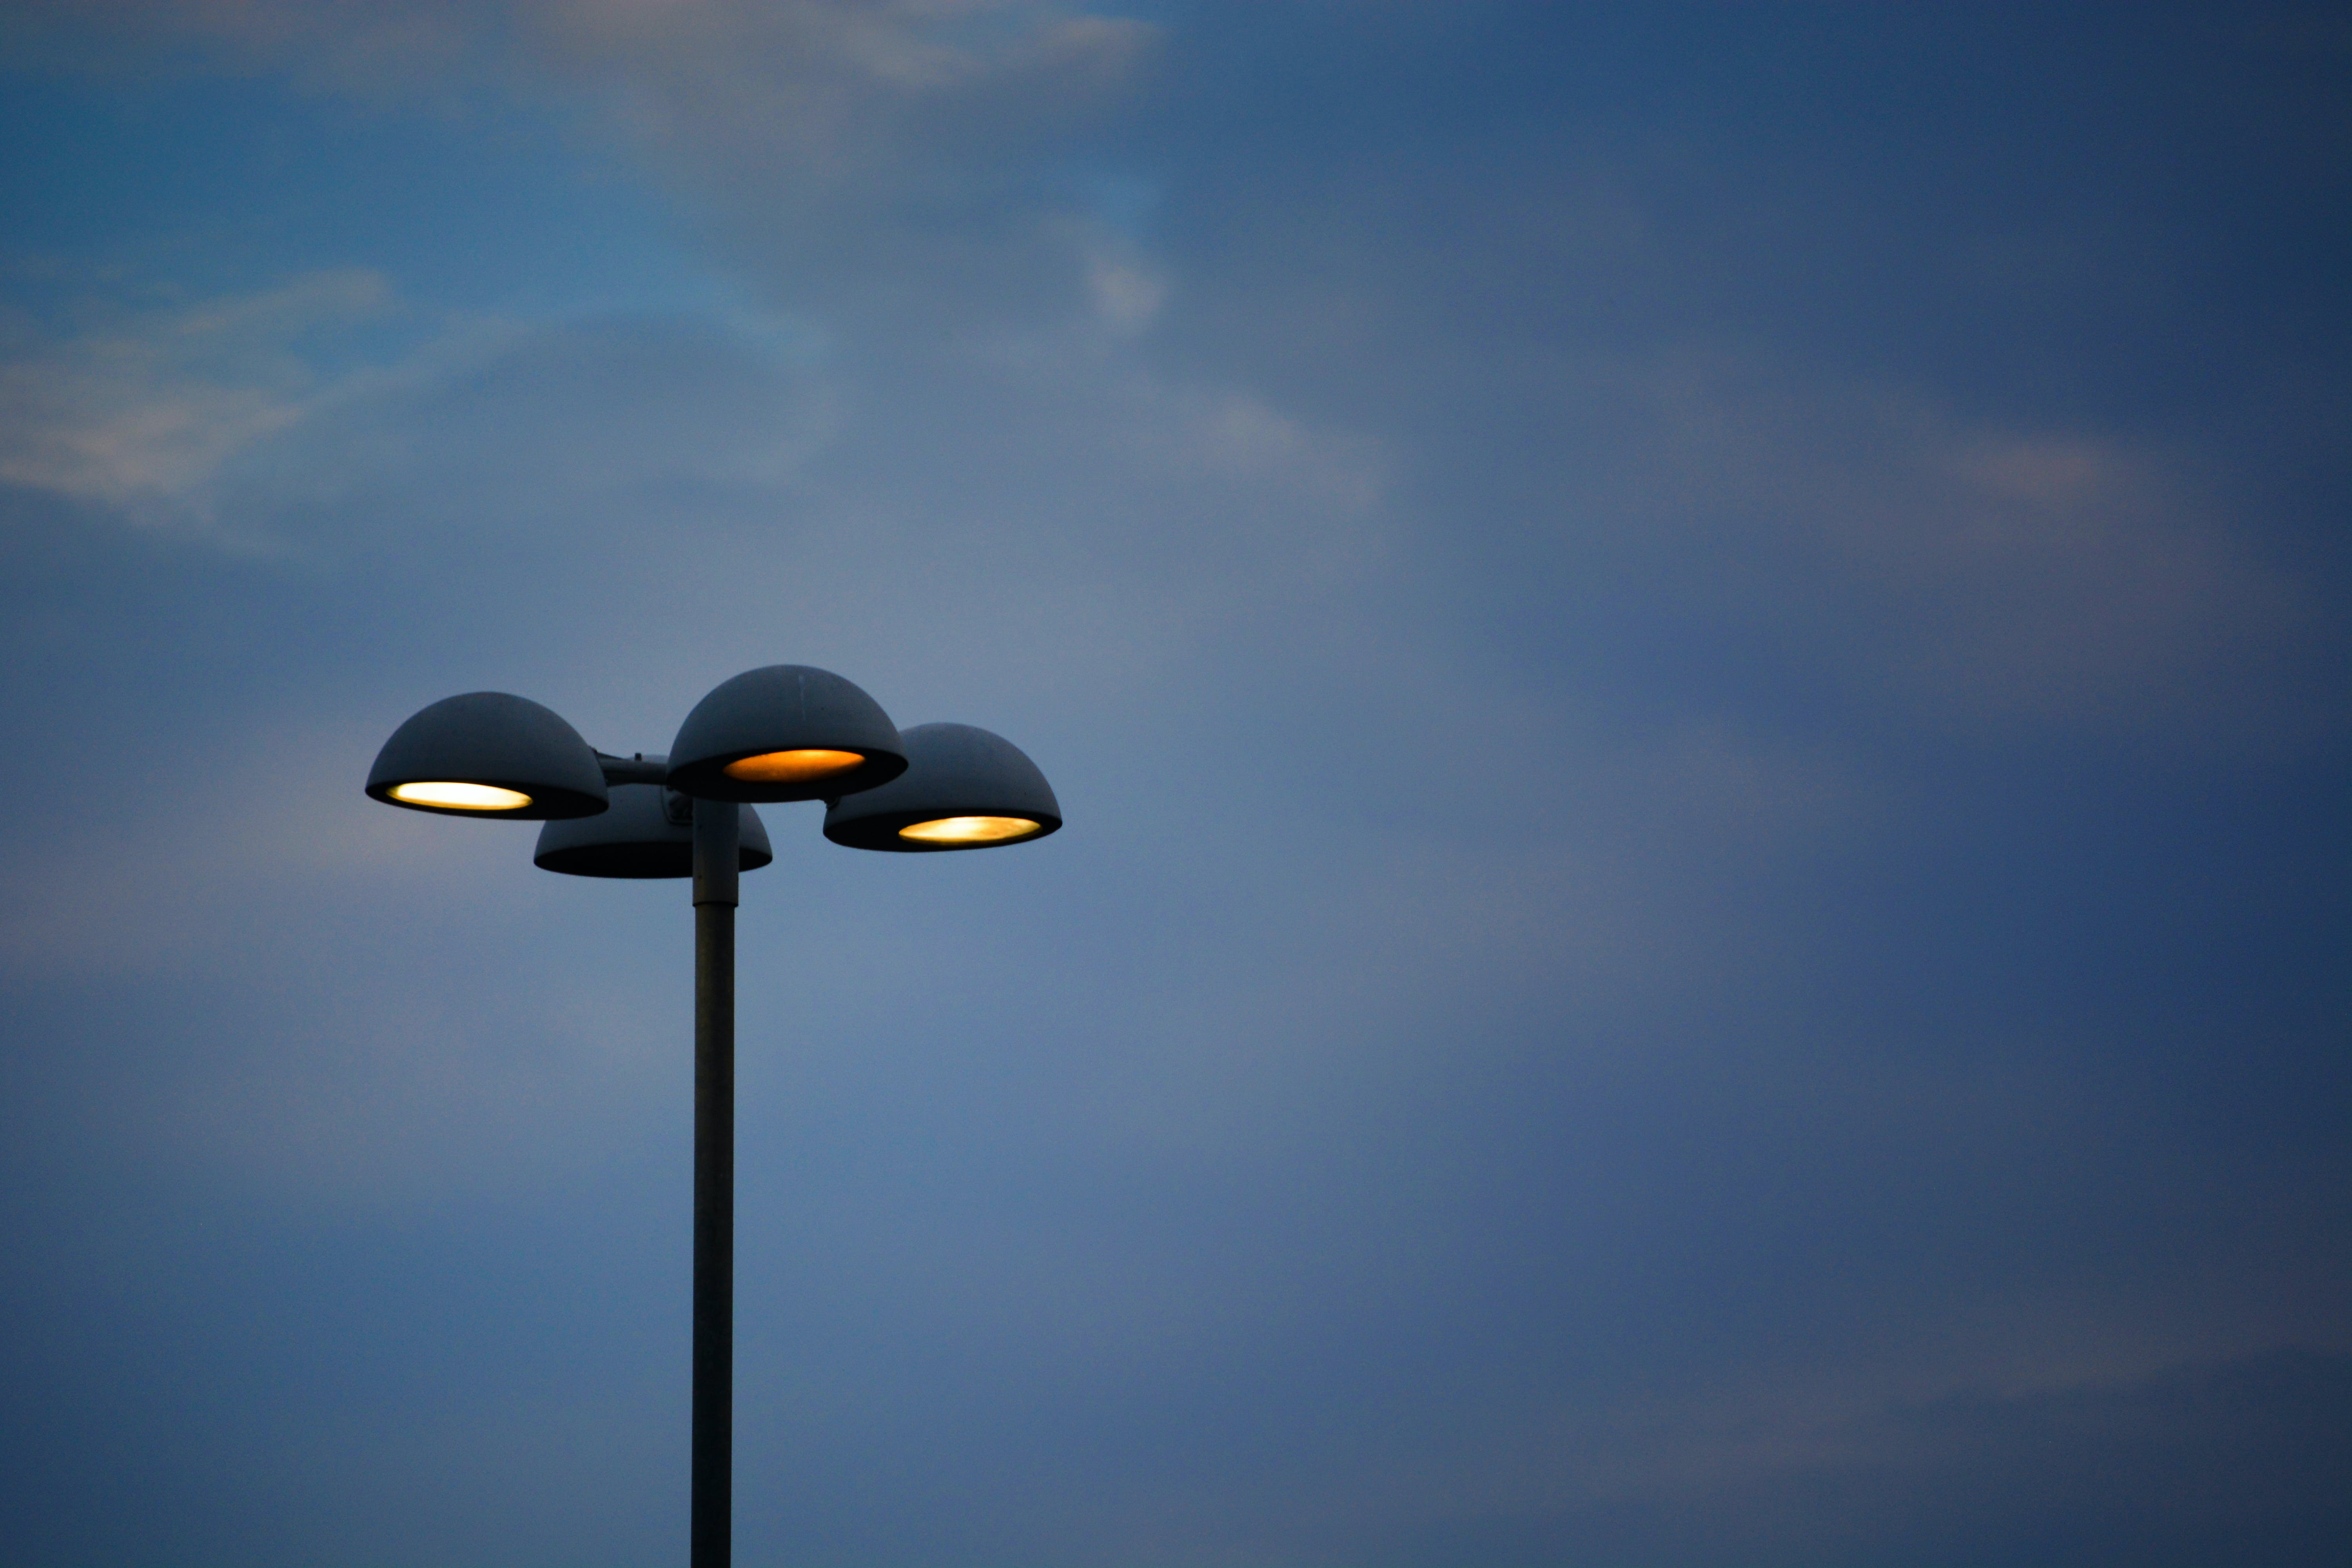 Free stock photo of blue sky, citylights, clear sky, lamp post